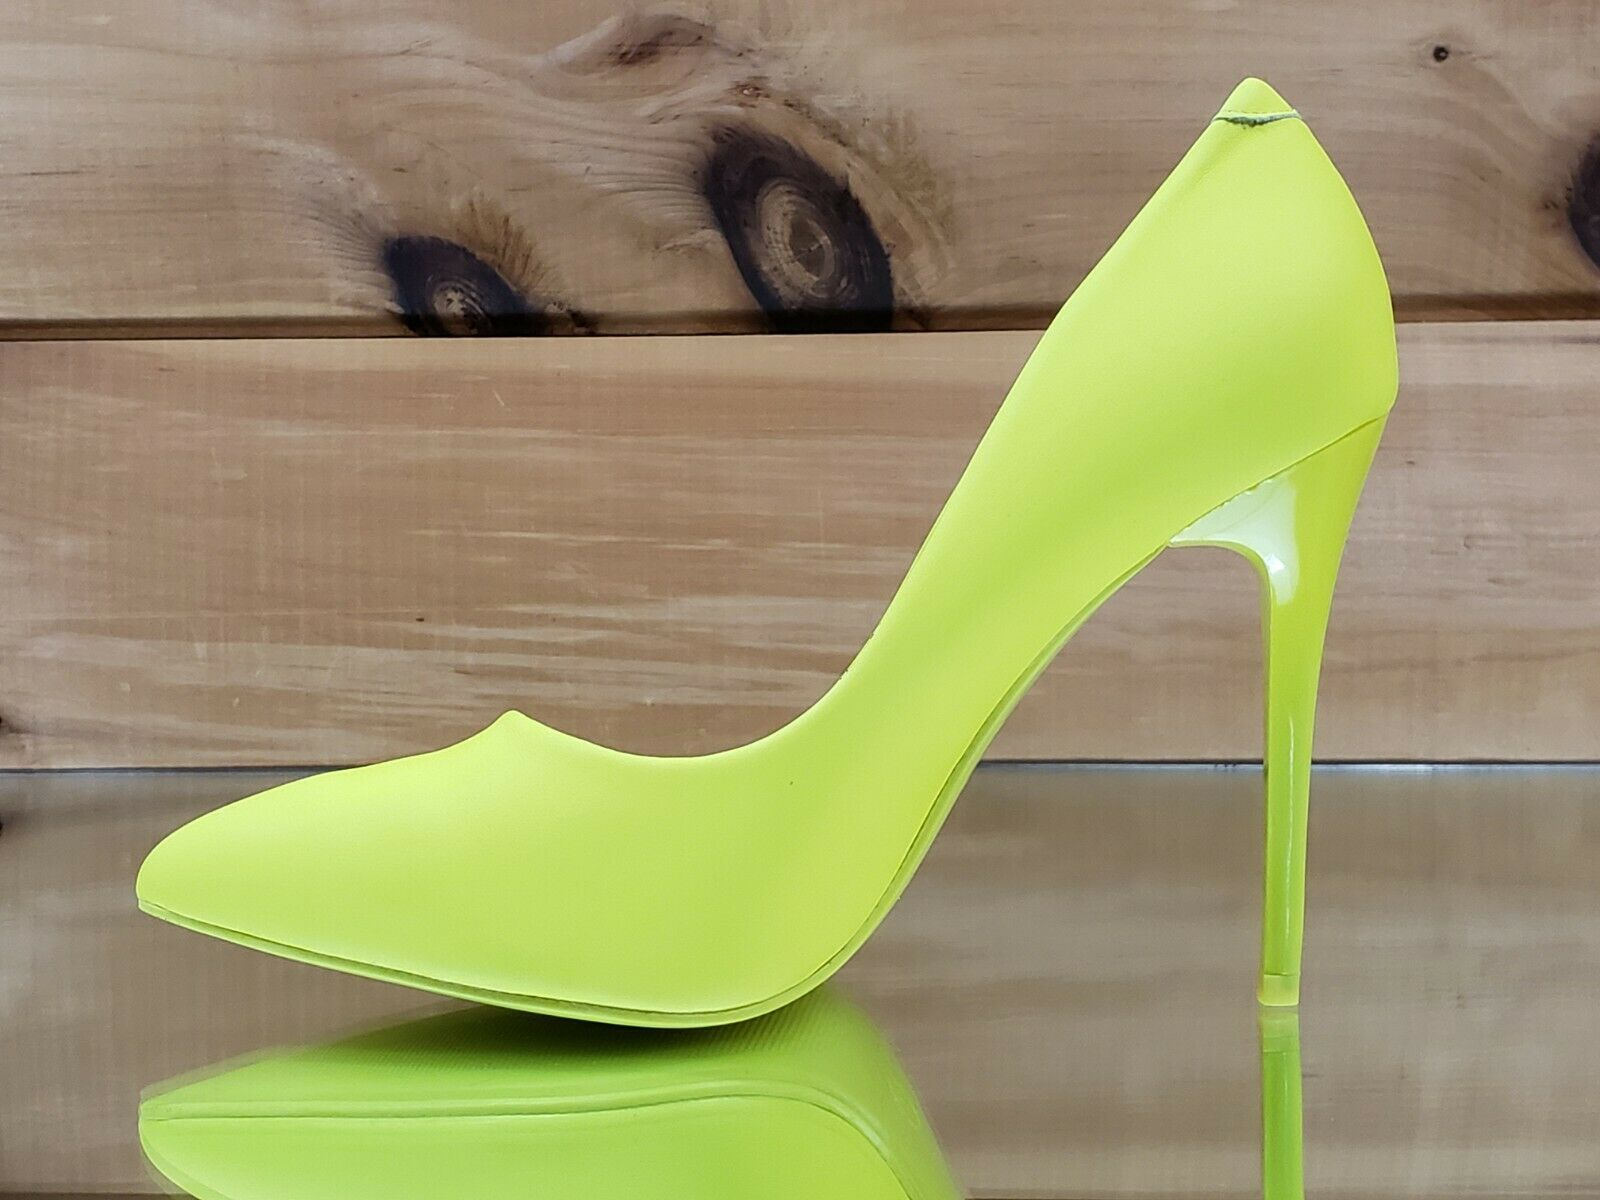 Fabio Lime Neon Yellow 4 5 High Heel Shoes Pointy Toe Pump 7 11 Heels Pointy Toe Pumps High Heel Shoes